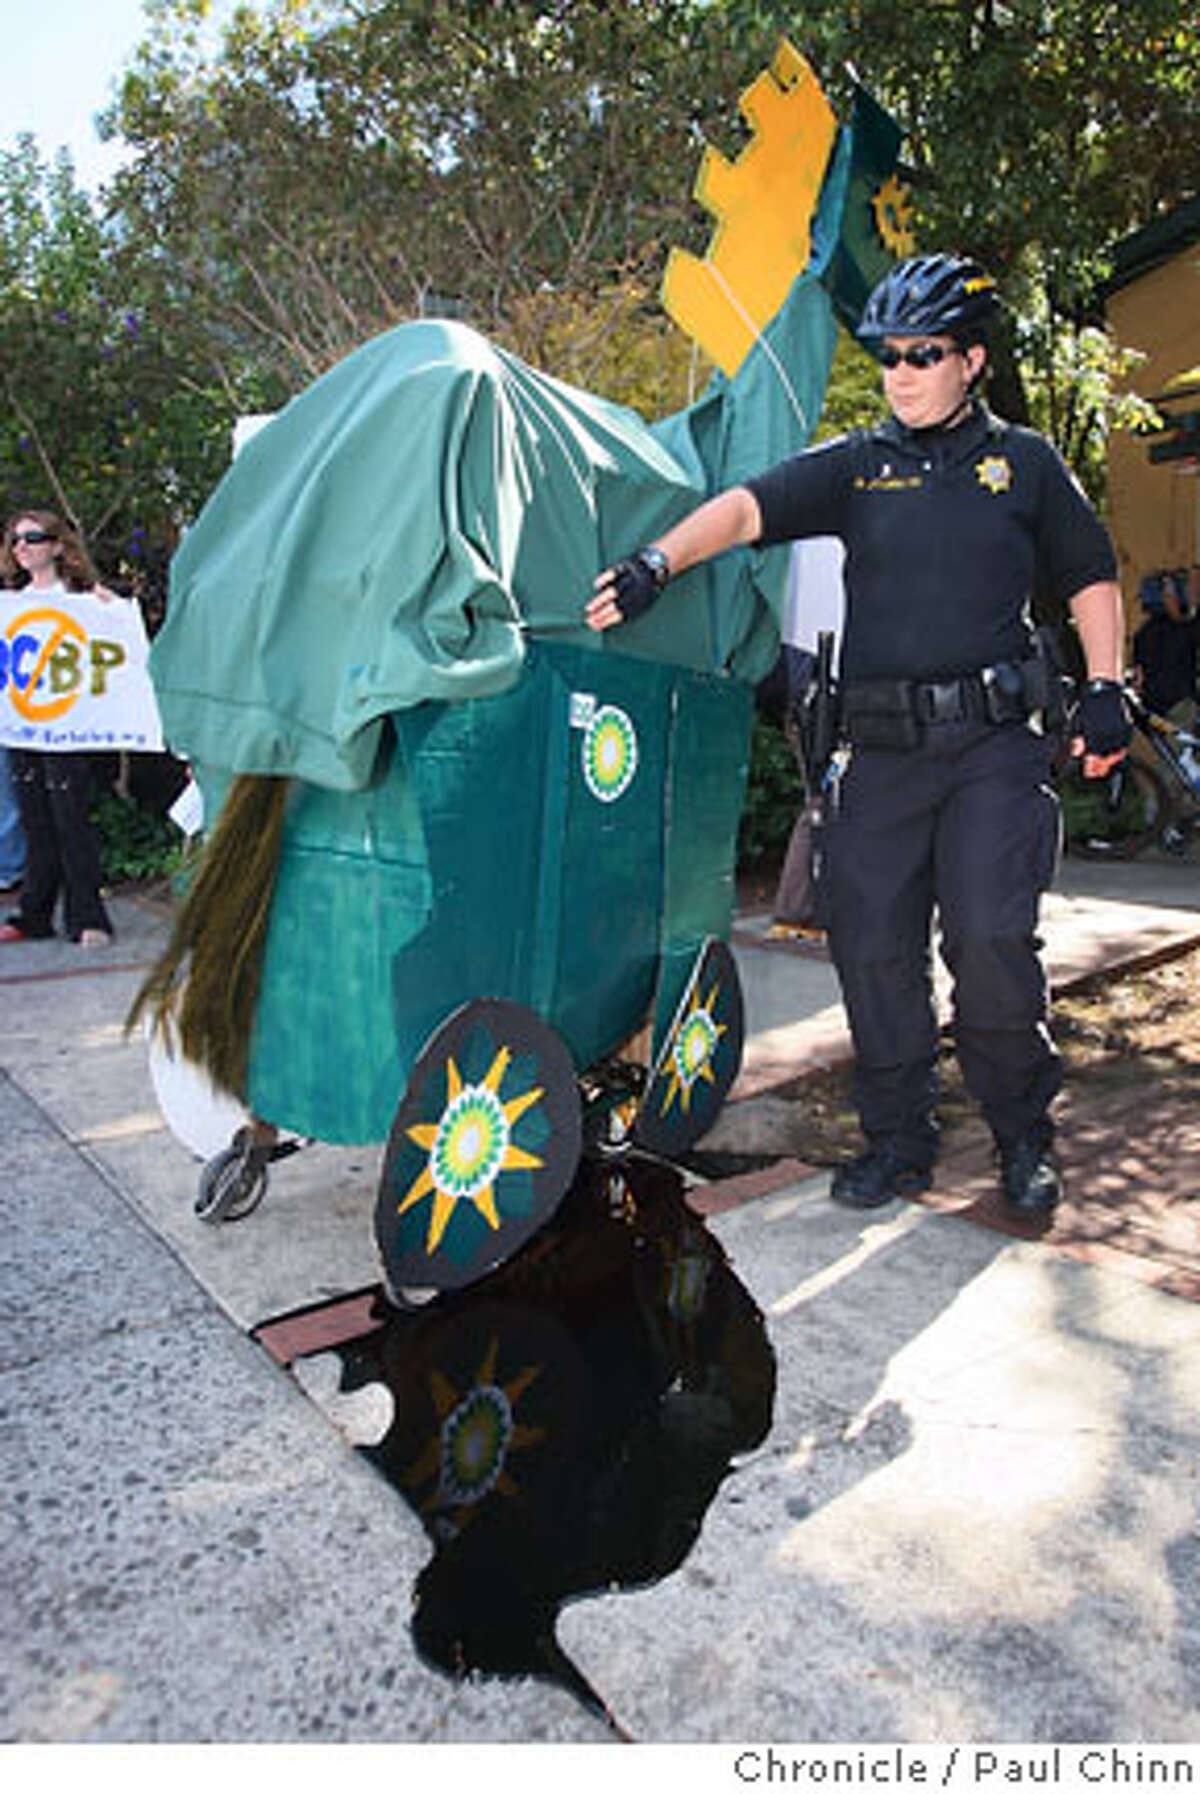 A UC police officer moves in tend to a Trojan Horse, delivered by protesters, that was dripping an oil-like fluid (it was molasses) in front of the Bancroft Hotel where a biofuel conference was convening in Berkeley, Calif. on Thursday, Oct. 4, 2007. The demonstration was organized to denounce the university's $500 million deal with oil giant BP and was timed to coincide with the two-day conference. PAUL CHINN/The Chronicle